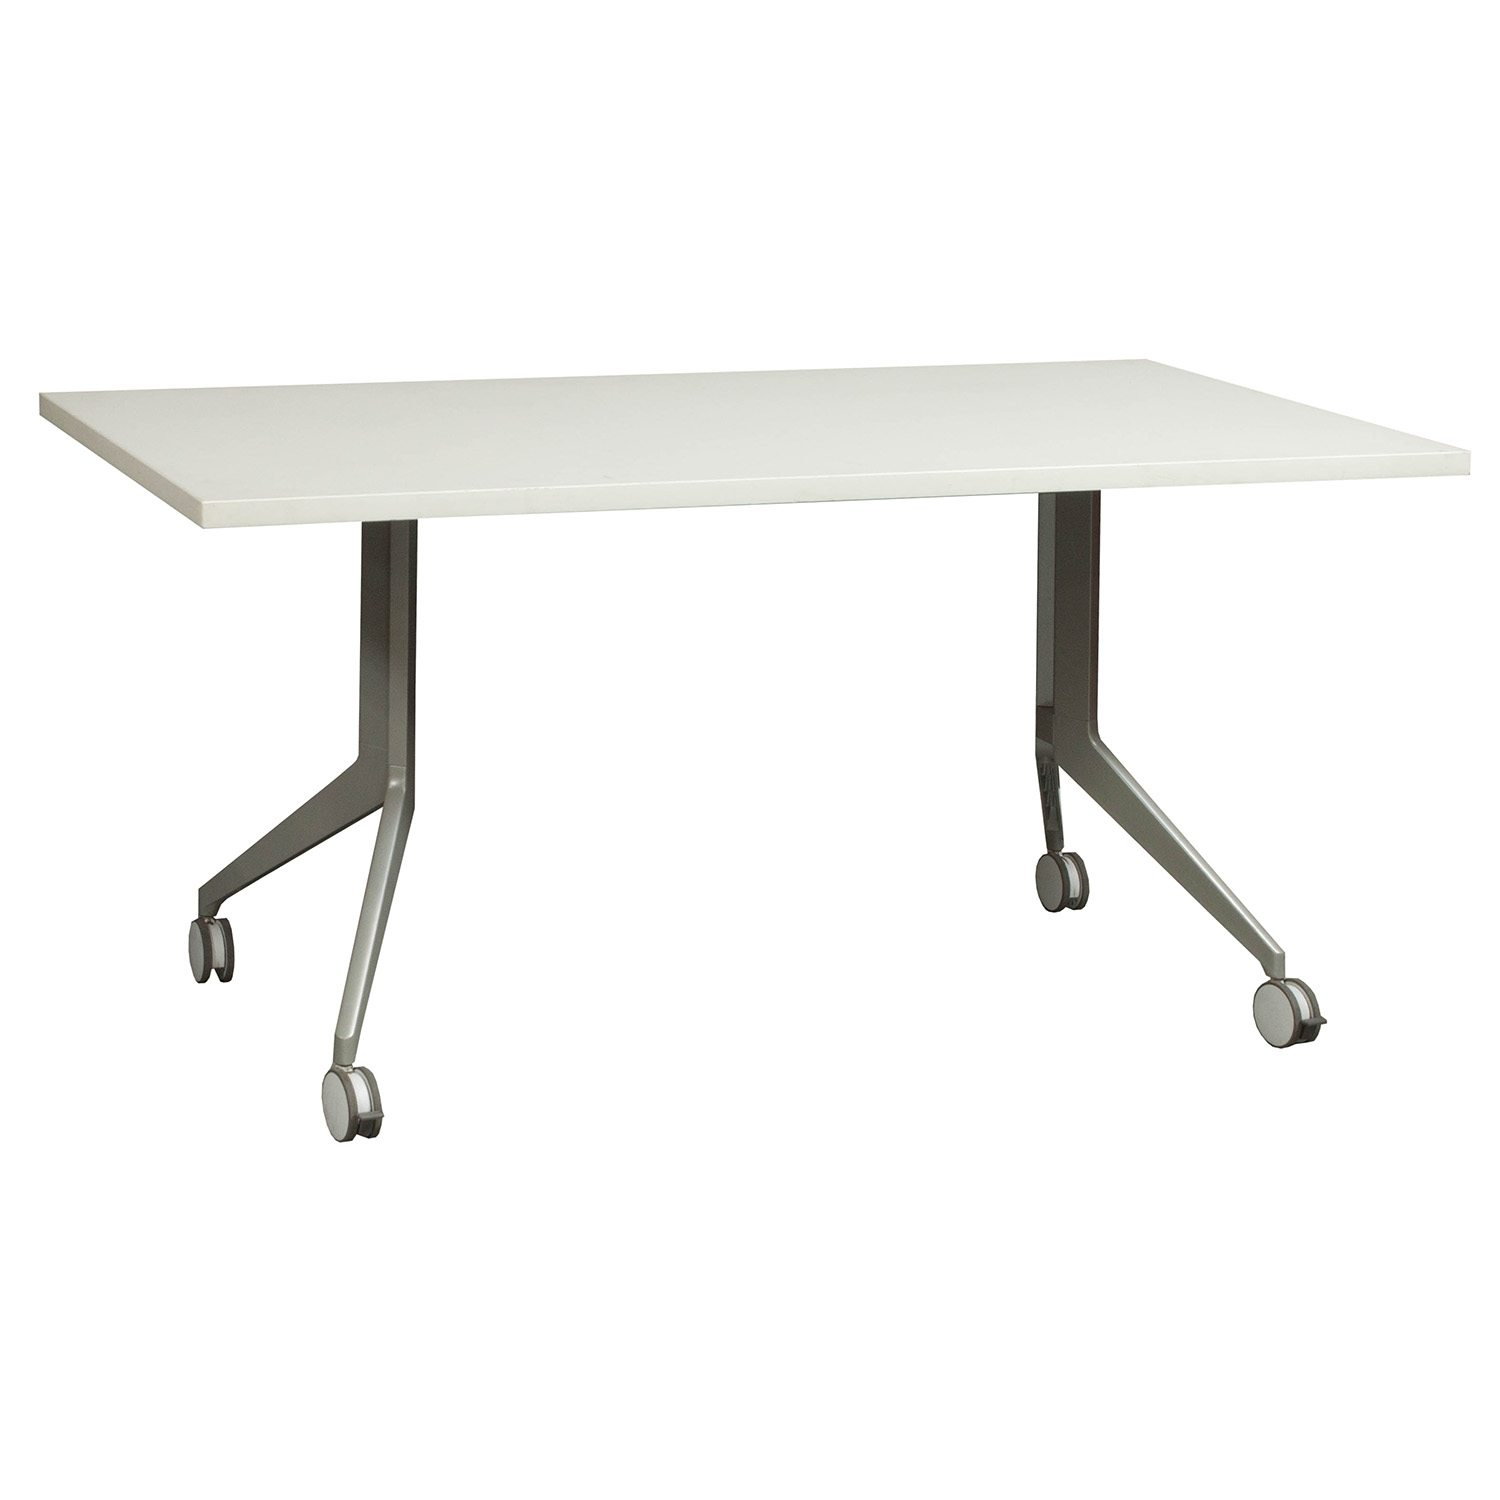 Haworth Planes Used 30 215 60 Training Table White National